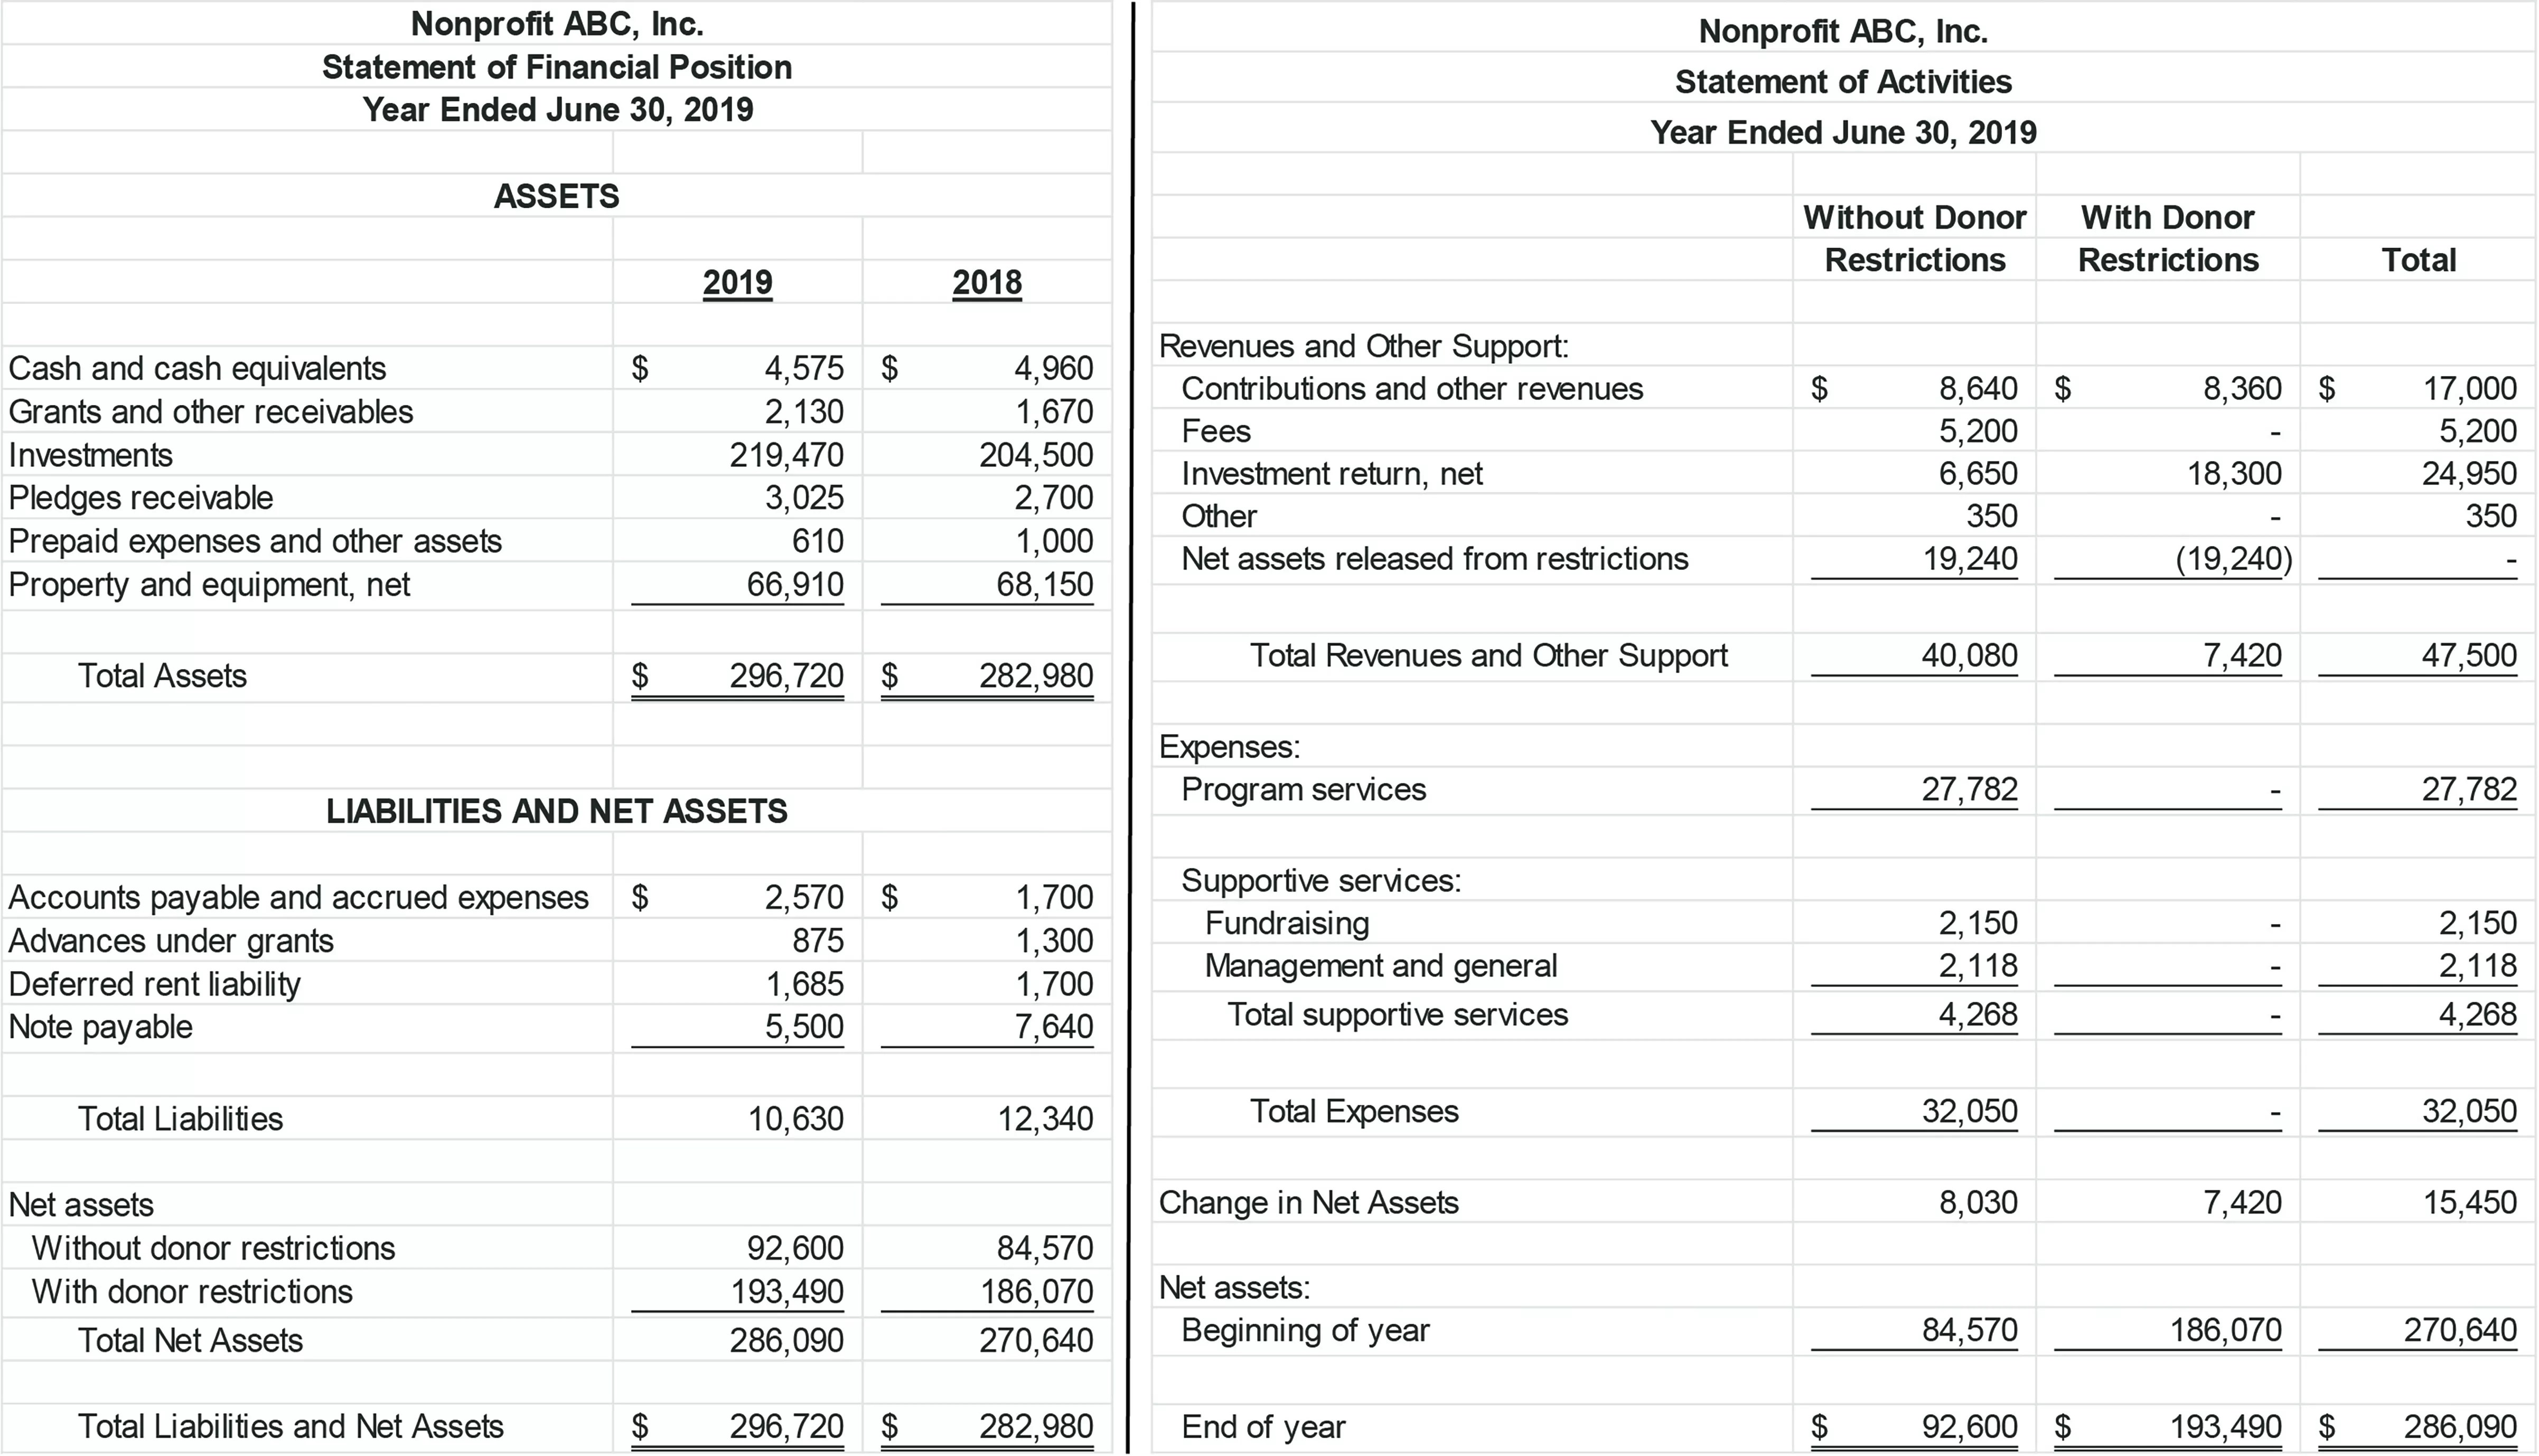 Fasb Nonprofit Financial Statement Project